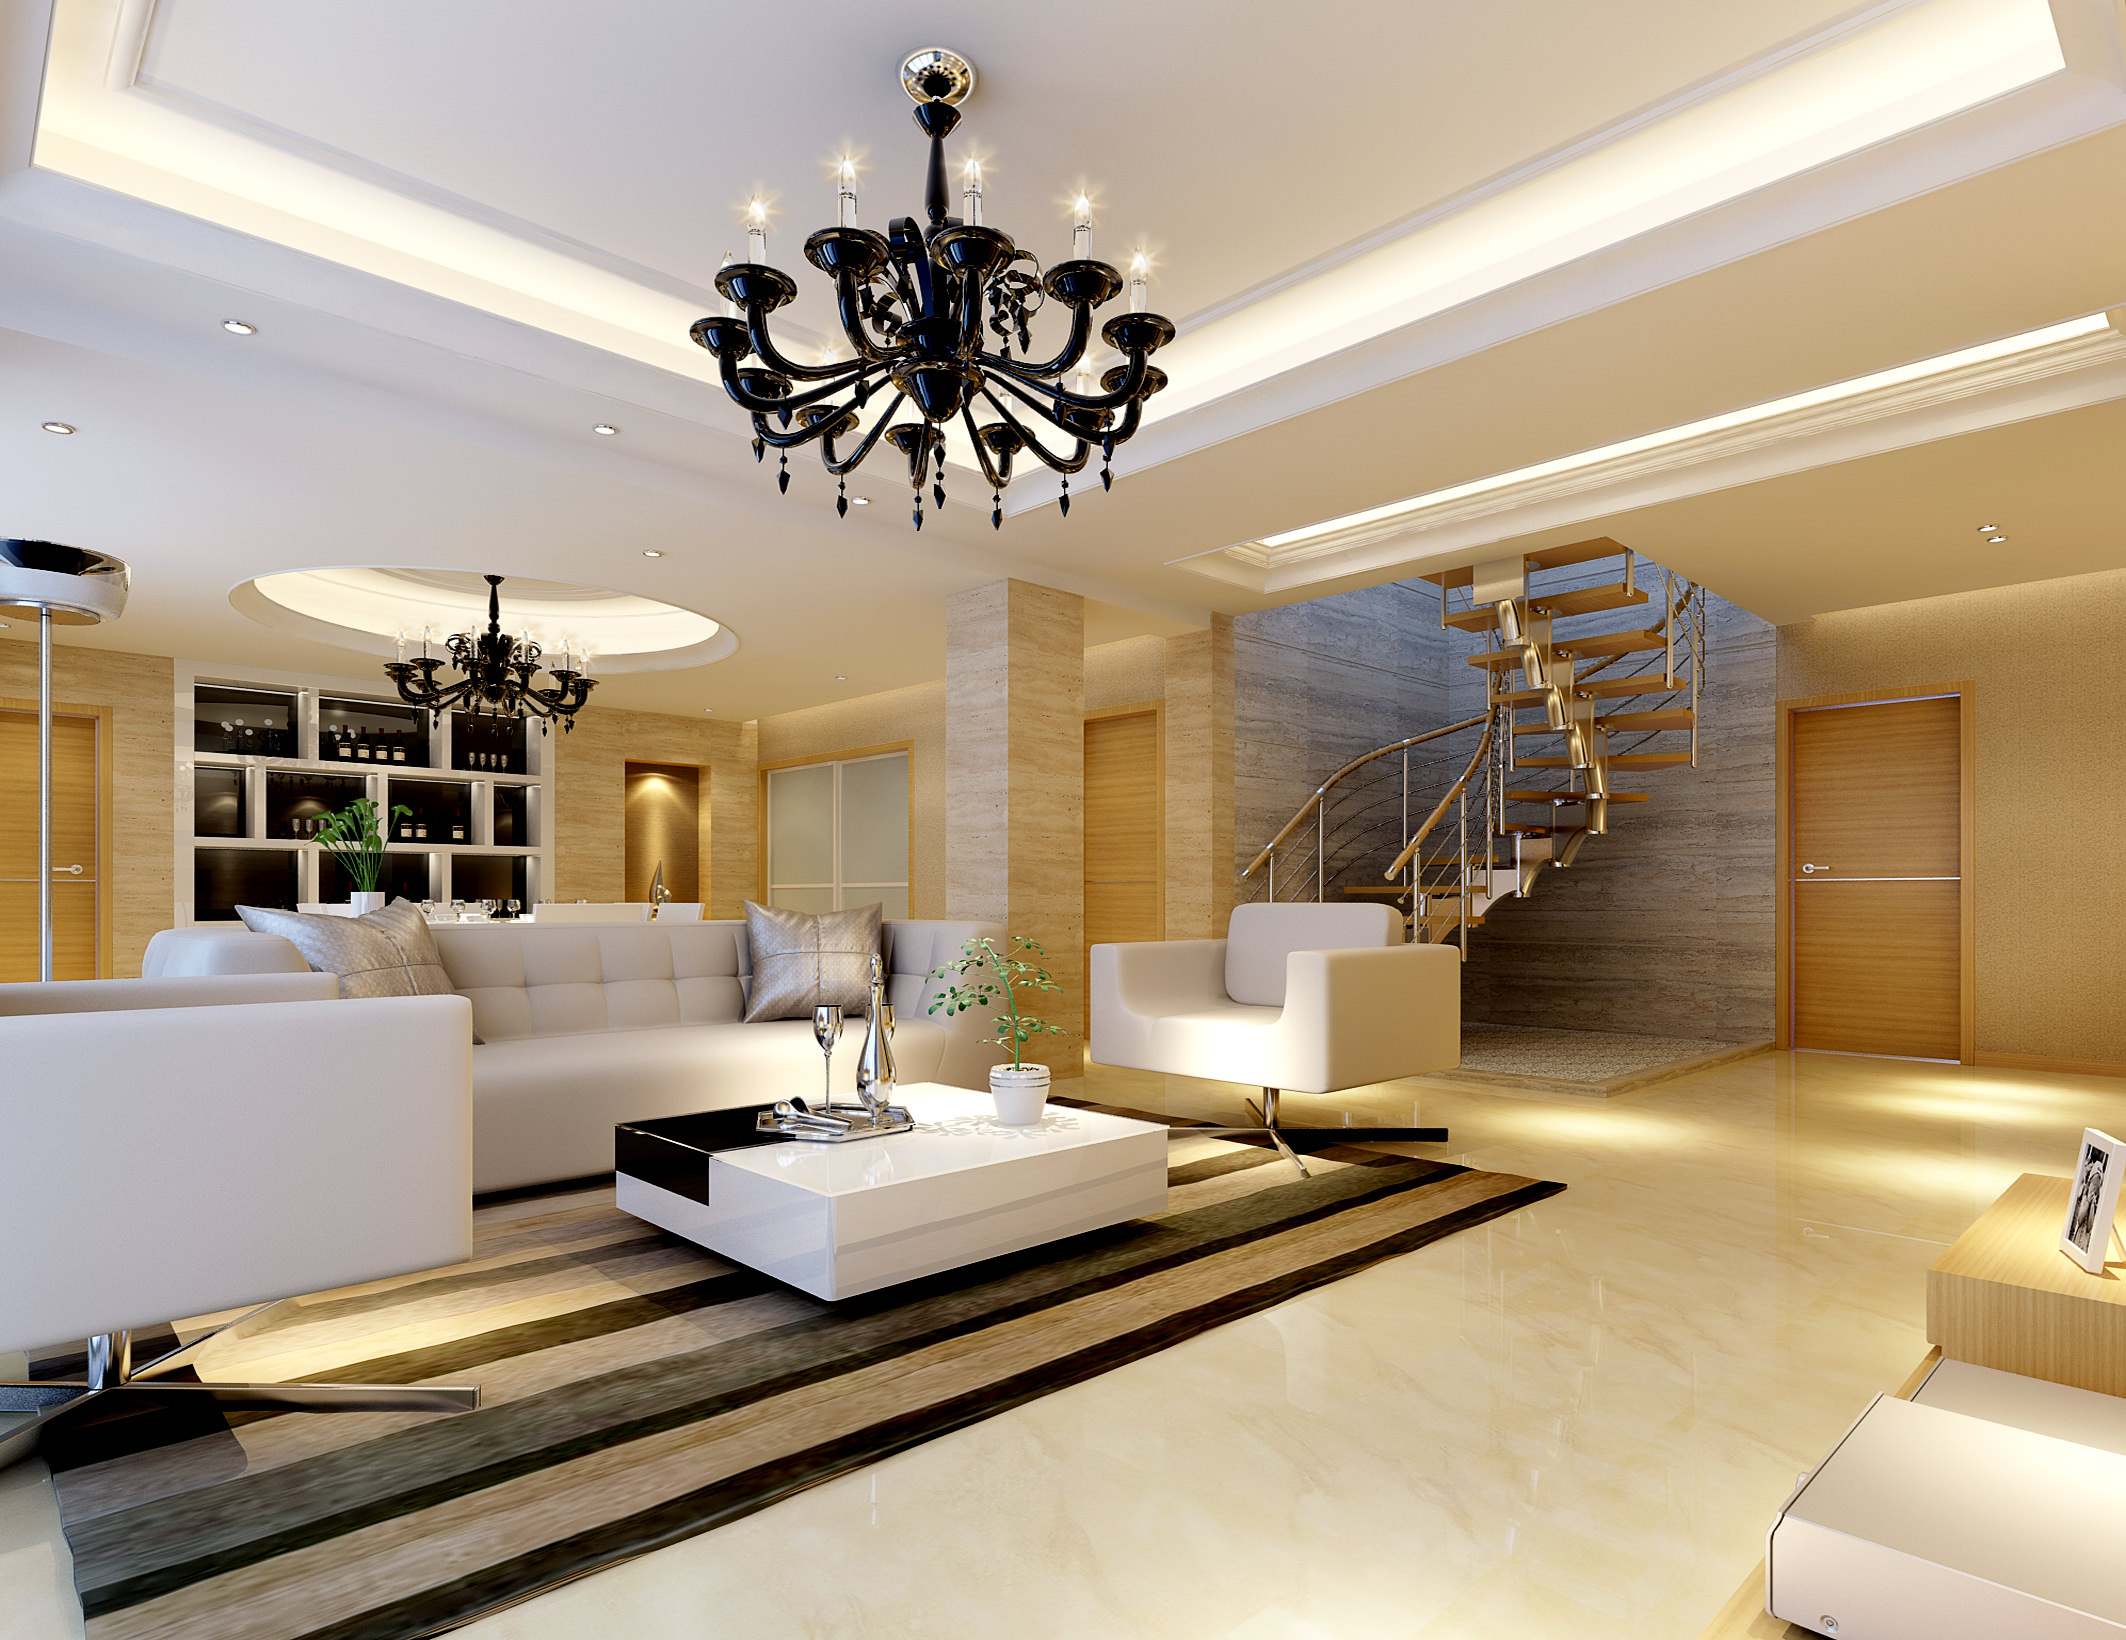 Living Room Model Prepossessing Modern Bright Spacious Living Room Fully Furnished 3D Model Max Design Inspiration